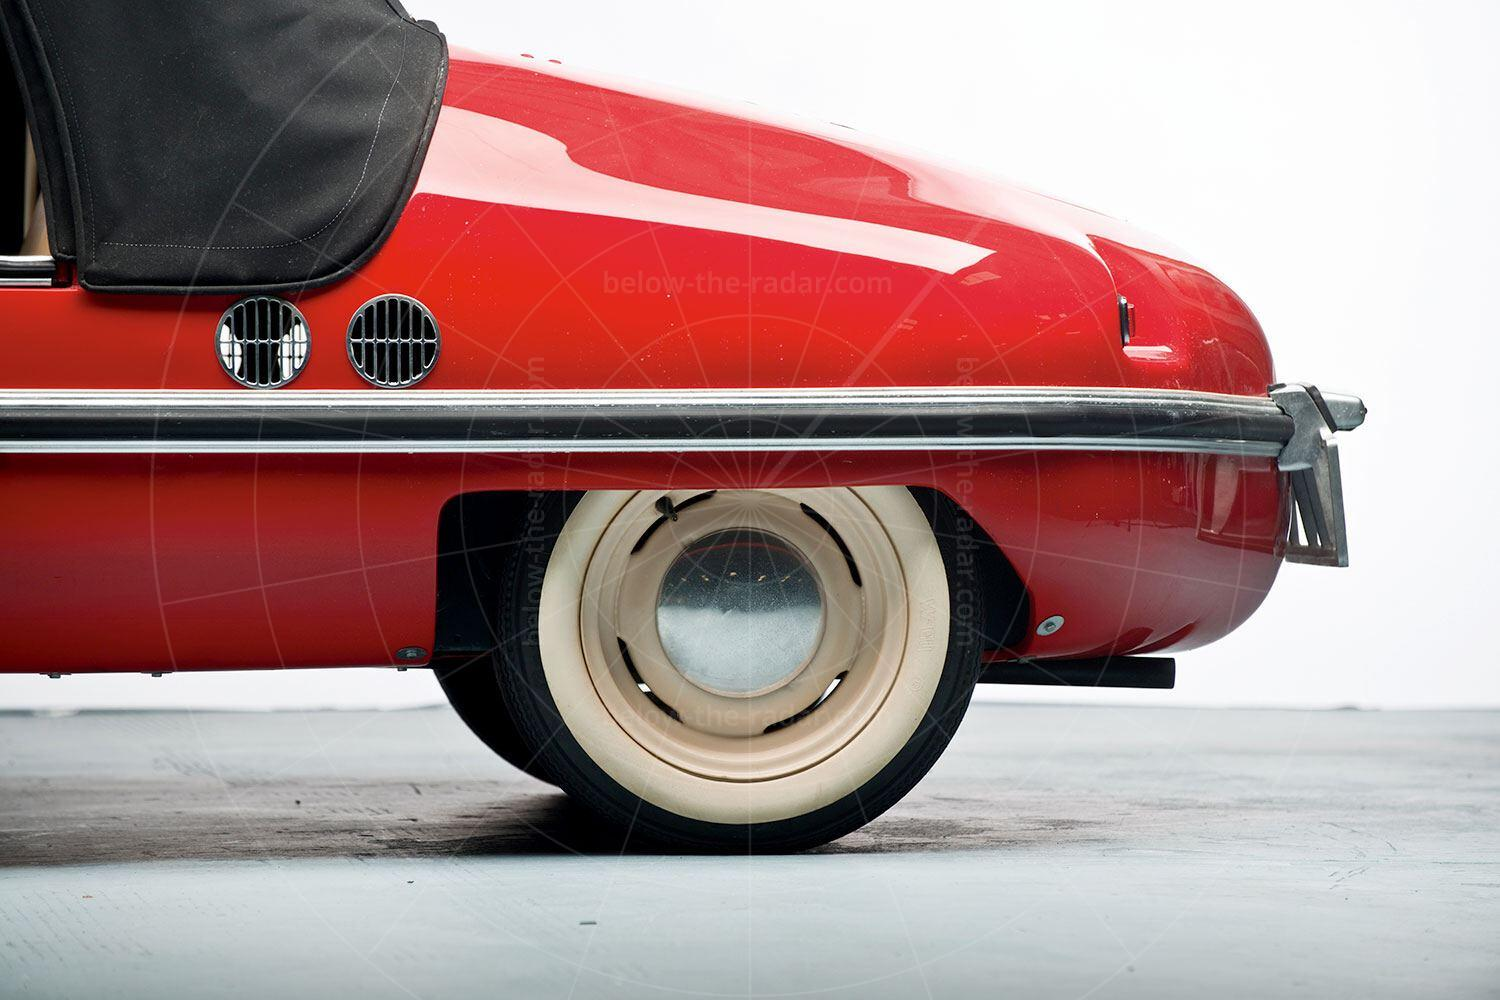 Victoria 250 back wheel Pic: RM Sotheby's | Victoria 250 back wheel